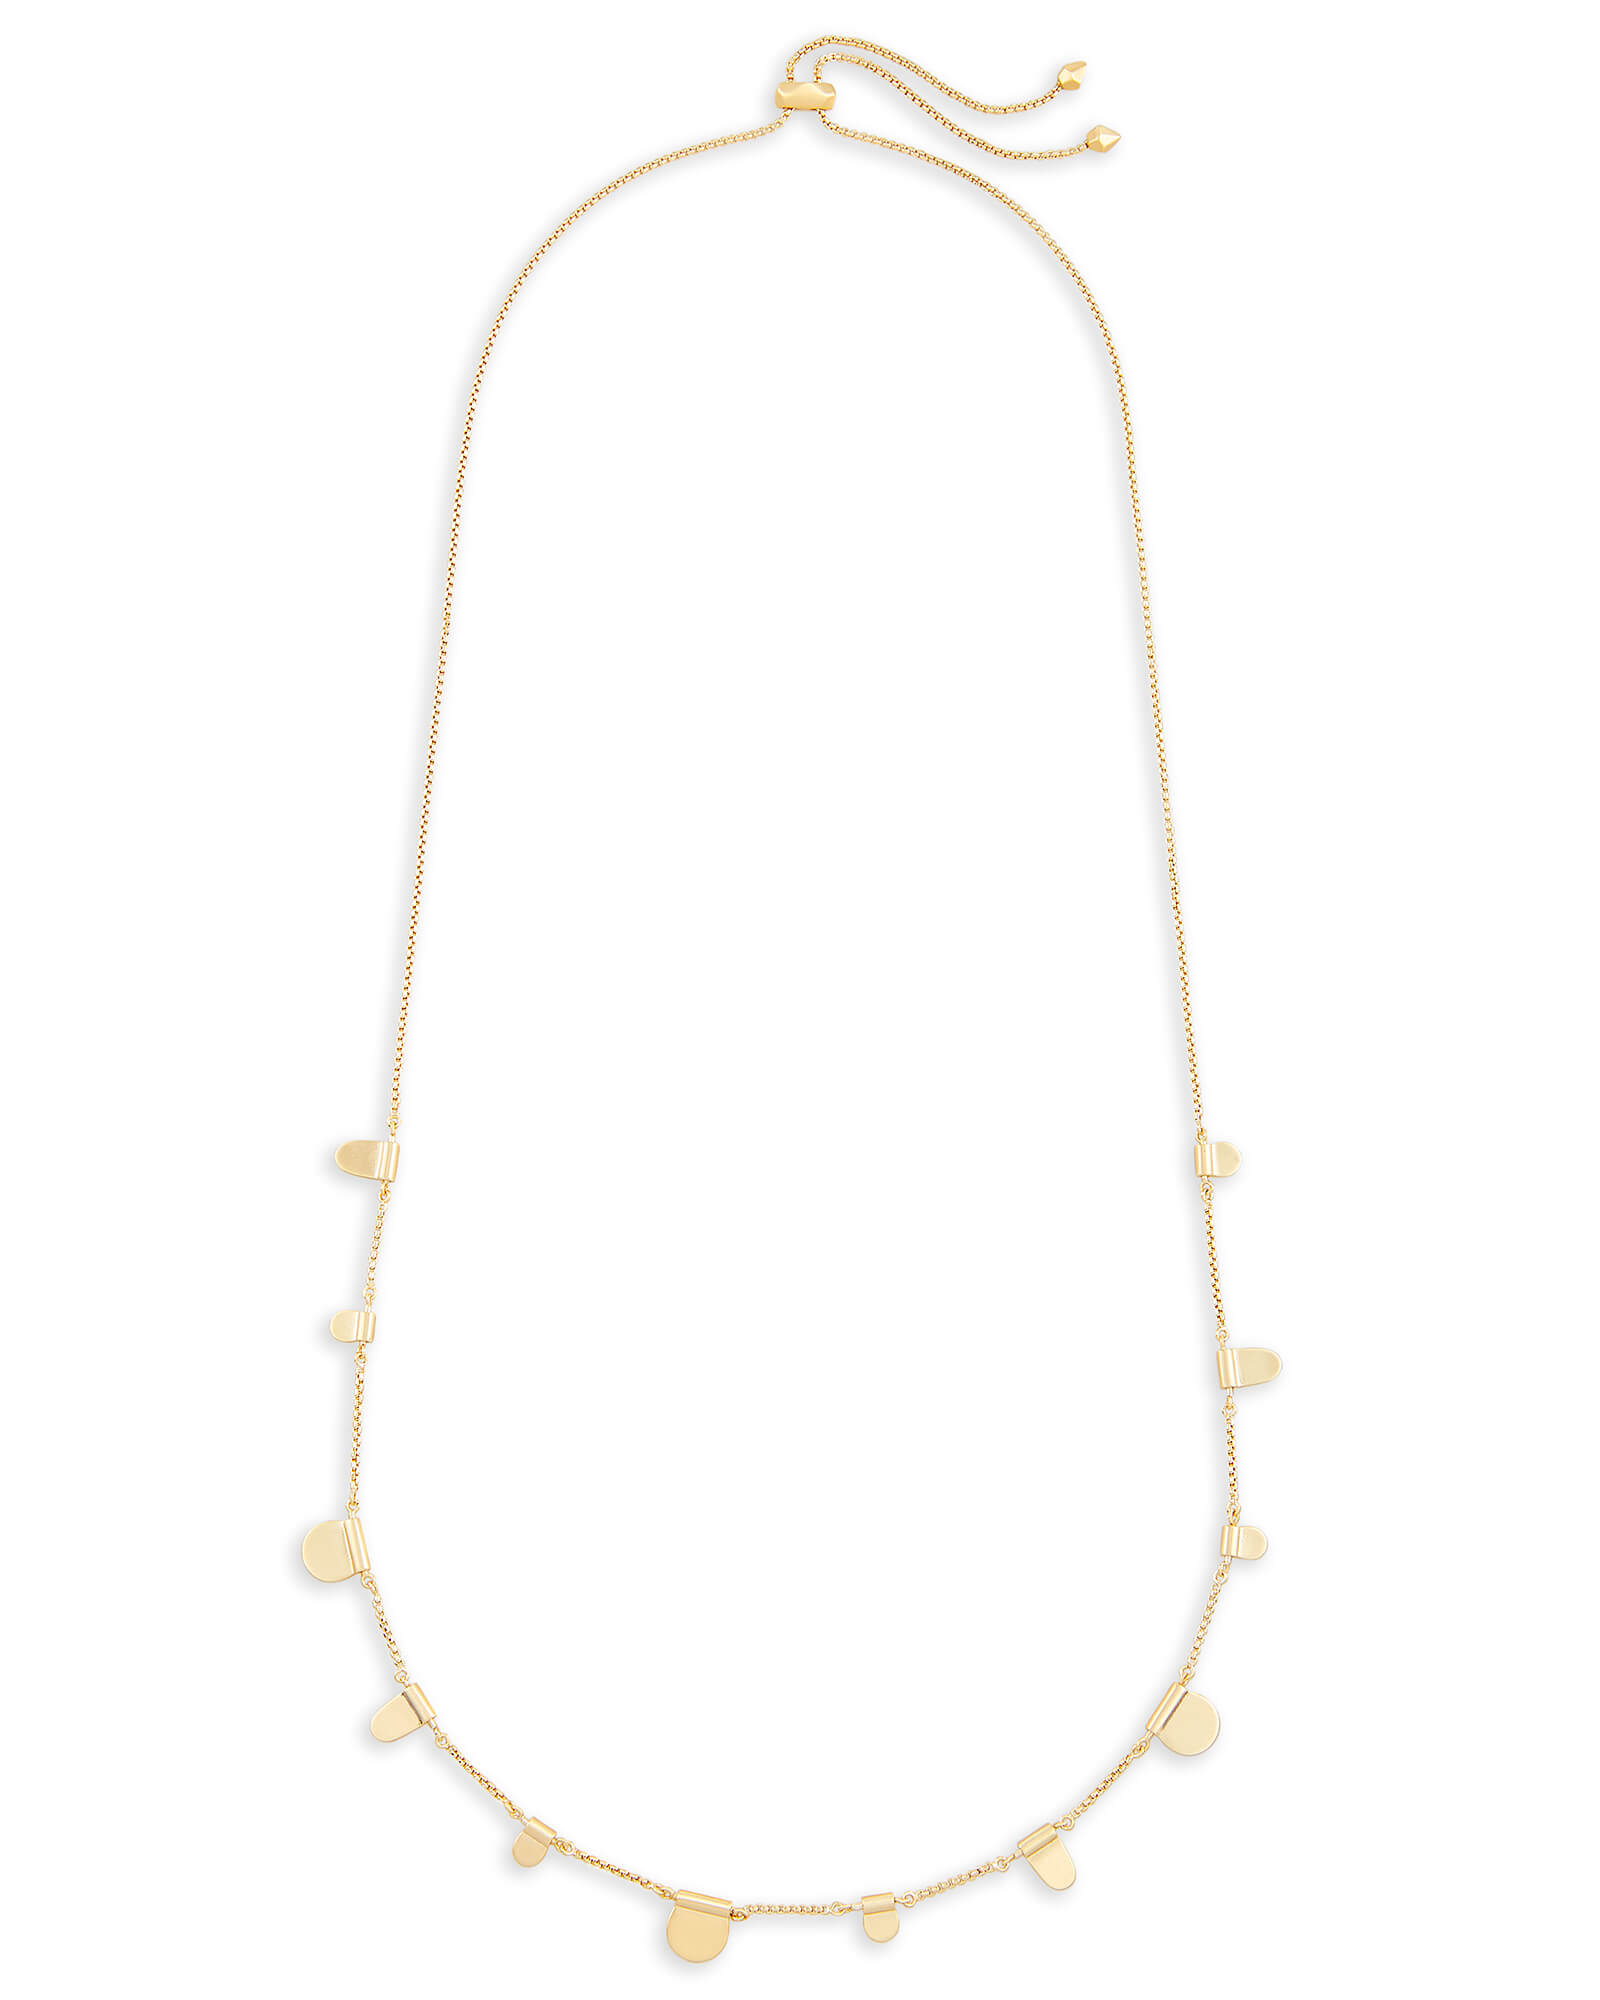 Mudd® Gold-Tone Glass Beaded Long Necklace. sale. $ Regular $ Graduated Simulated Pearl Necklace. sale. $ Regular $ Napier® Metallic Beaded Necklace. sale. $ Regular $ Simply Vera Vera Wang Silver Tone Long Statement Necklace. sale. $ Regular $ Smooth Round Disc Long Necklace.